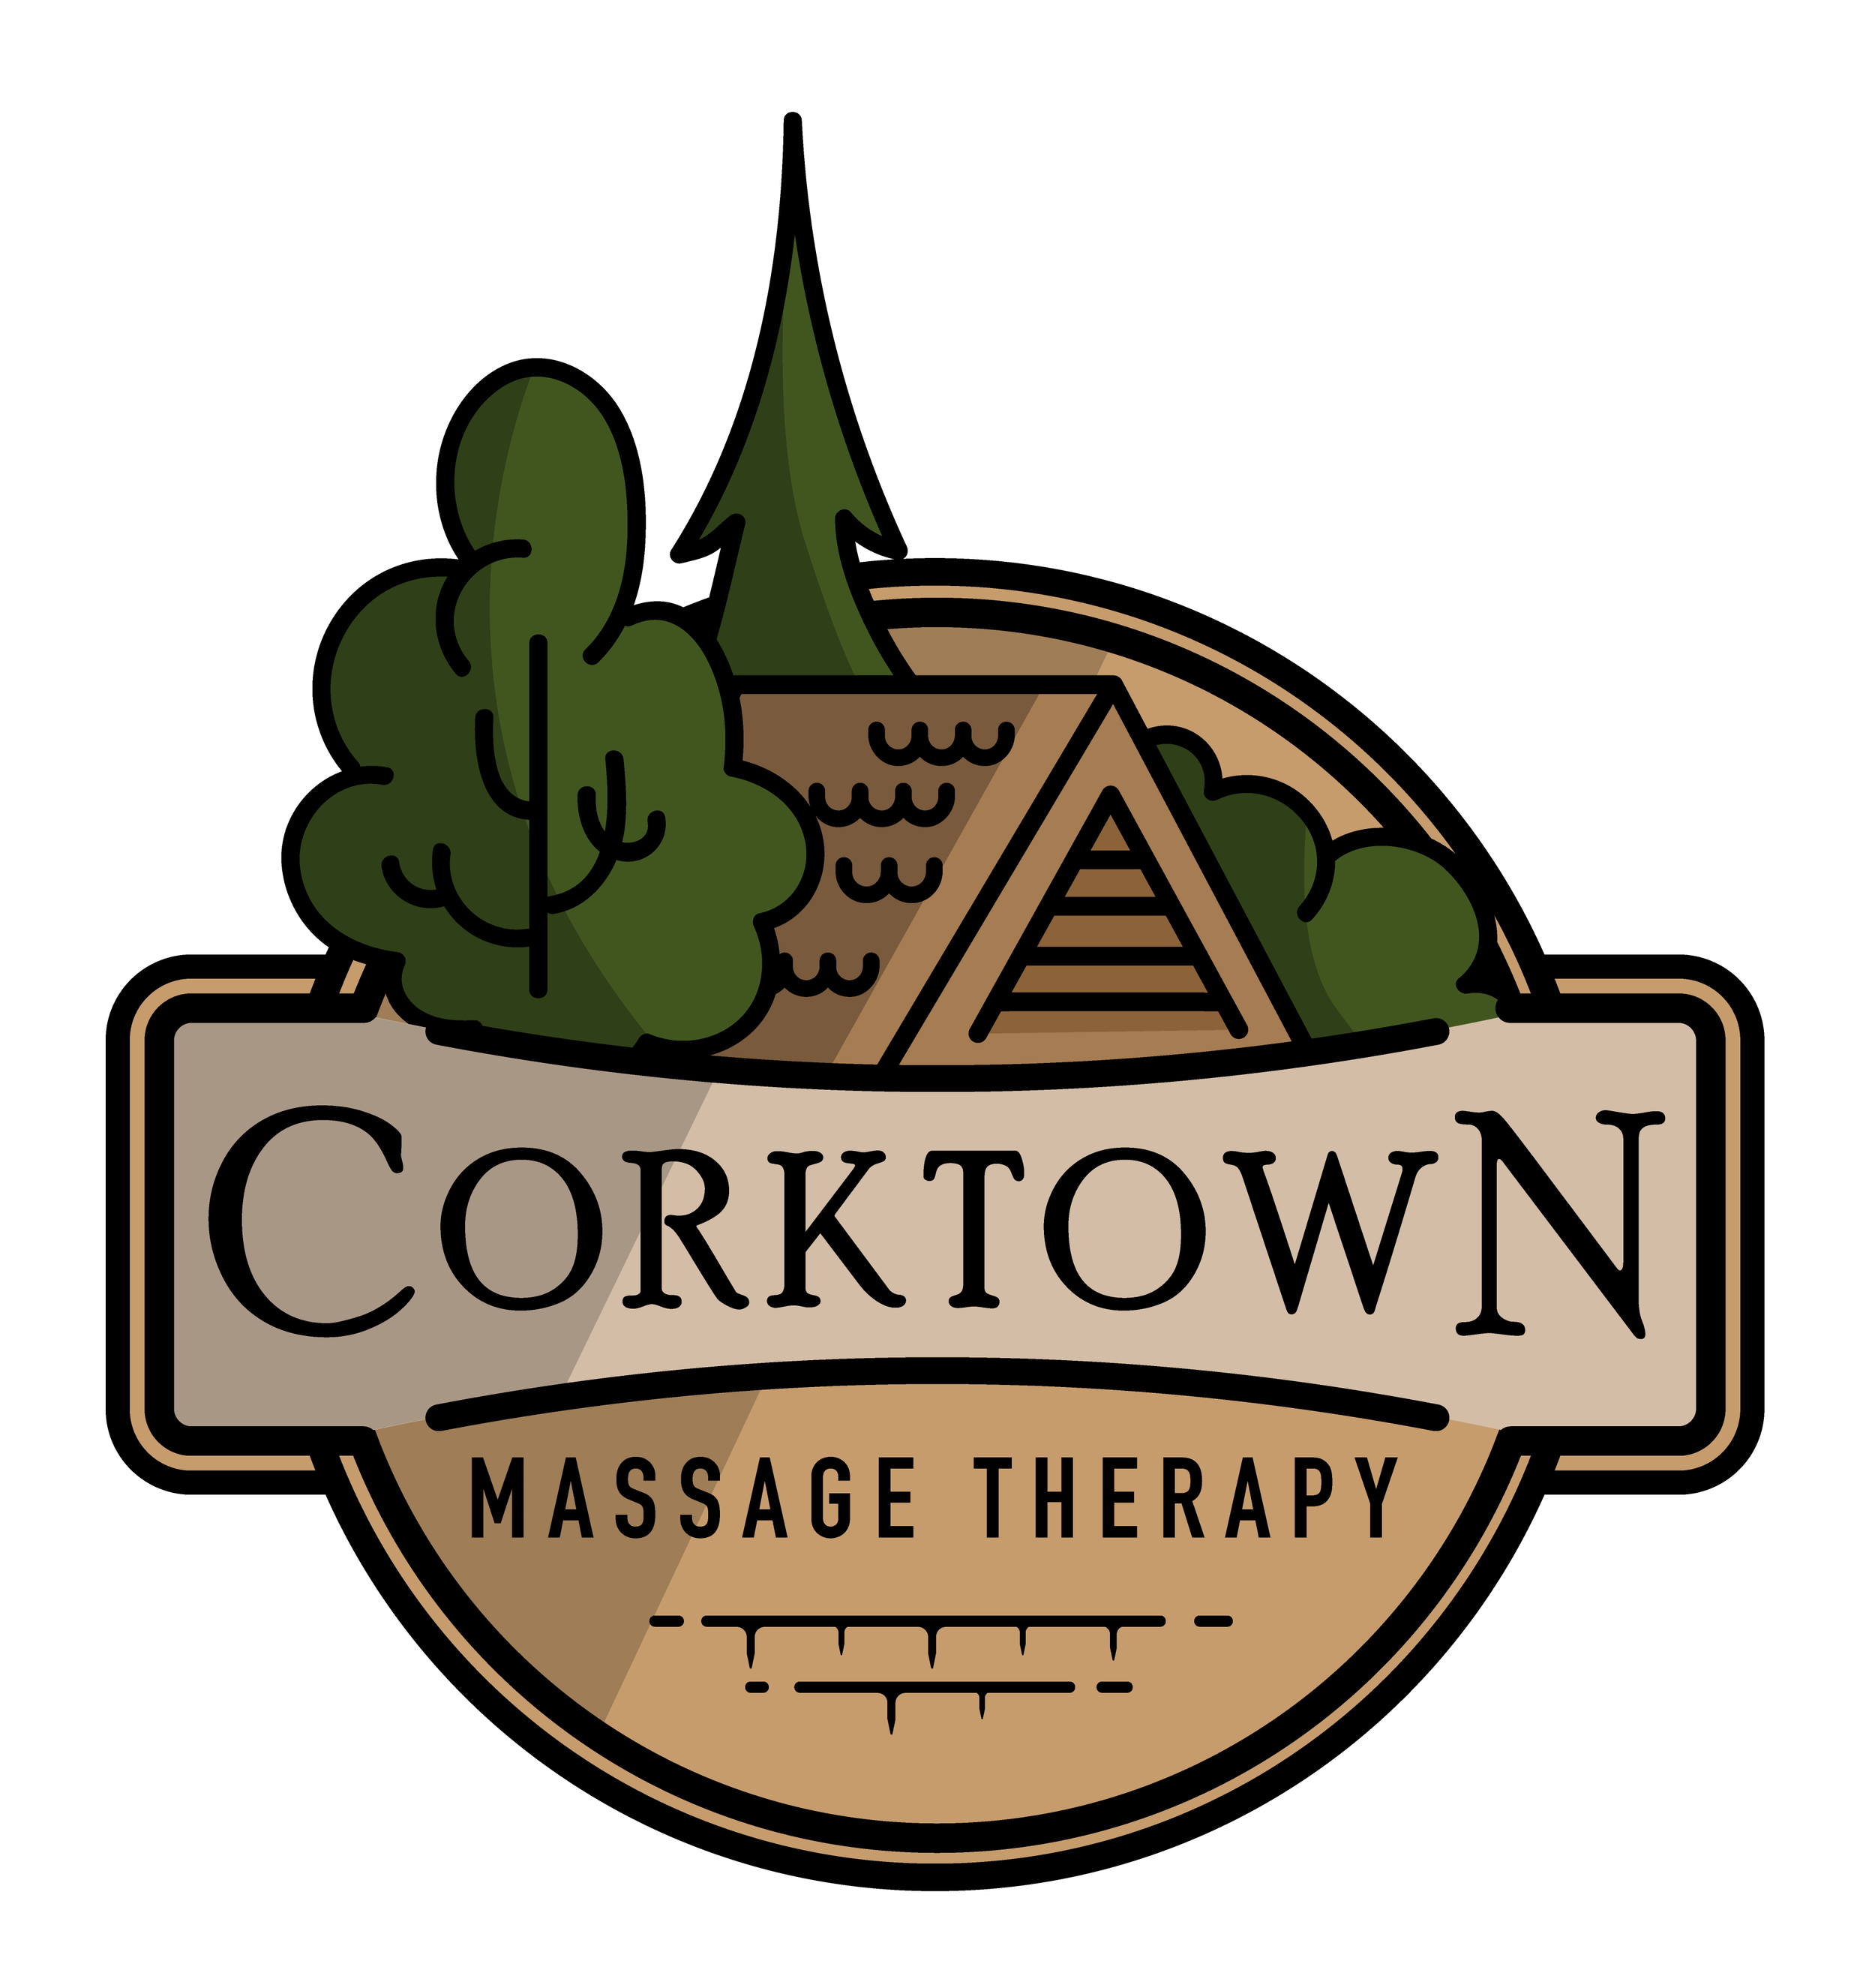 Jeramie Lambert - Registered Massage TherapistLocated in the Corktown neighbourhood of downtown Hamilton, just steps from St. Joseph's hospital.Current available hours:(Please note this will be changing Sept 3, 2019)Monday *10am - 7pmTuesday 10am - 7pmWednesday 11am - 8pmThursday 10am - 8pmFriday 9am - 6pm Saturday *9am - 5pm*Alternating Mondays and SaturdaysBook online, call 905.246.0062, or email info@corktownmassagetherapy.com for bookings.DIRECT BILLING ACCEPTED!Now accepting Interac Tap and Apple Pay!